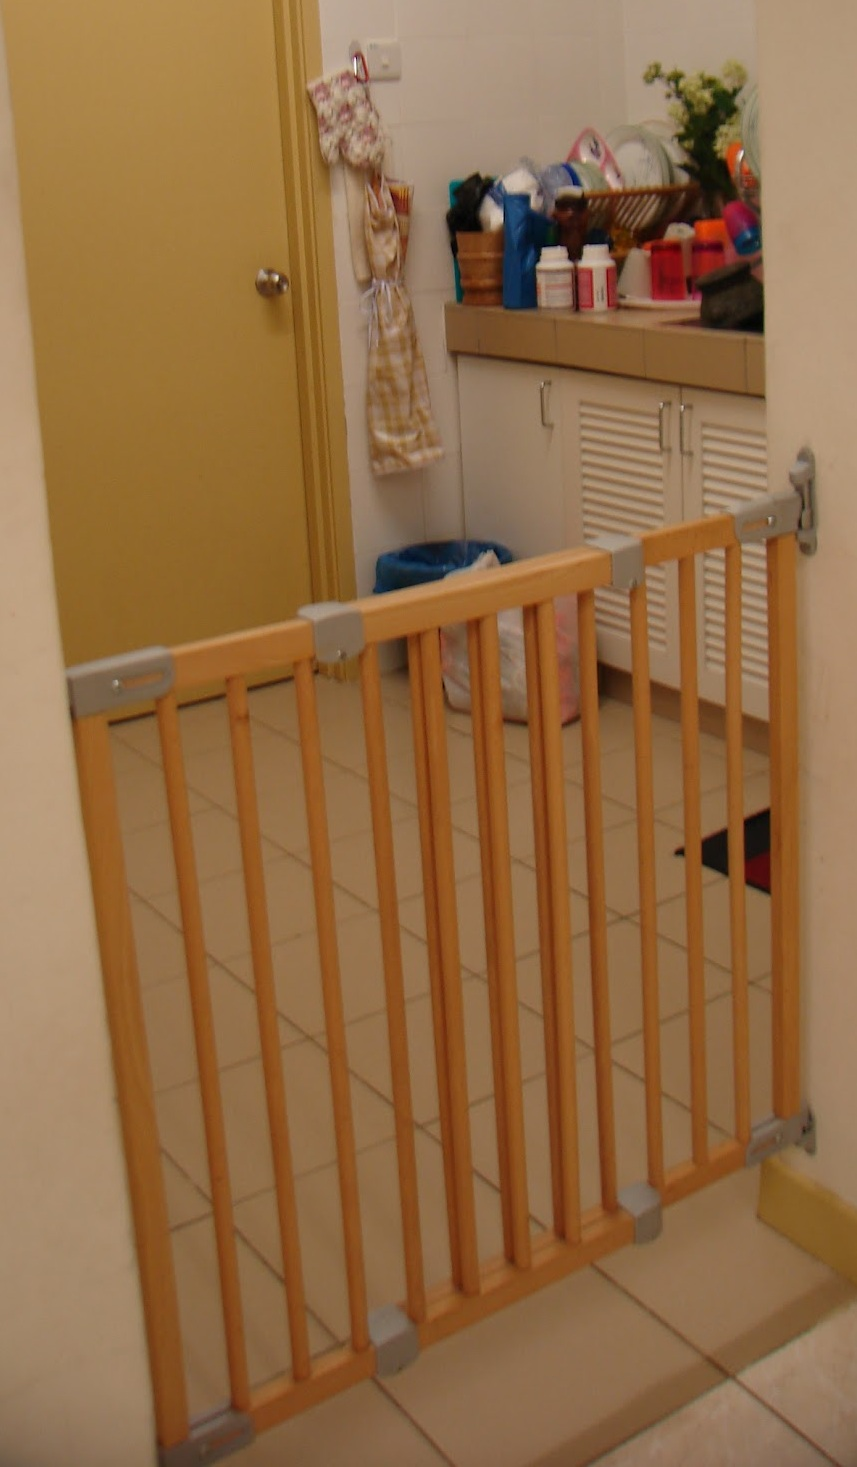 Joys Of Toy Amp Baby Stuff Child Safety Gate